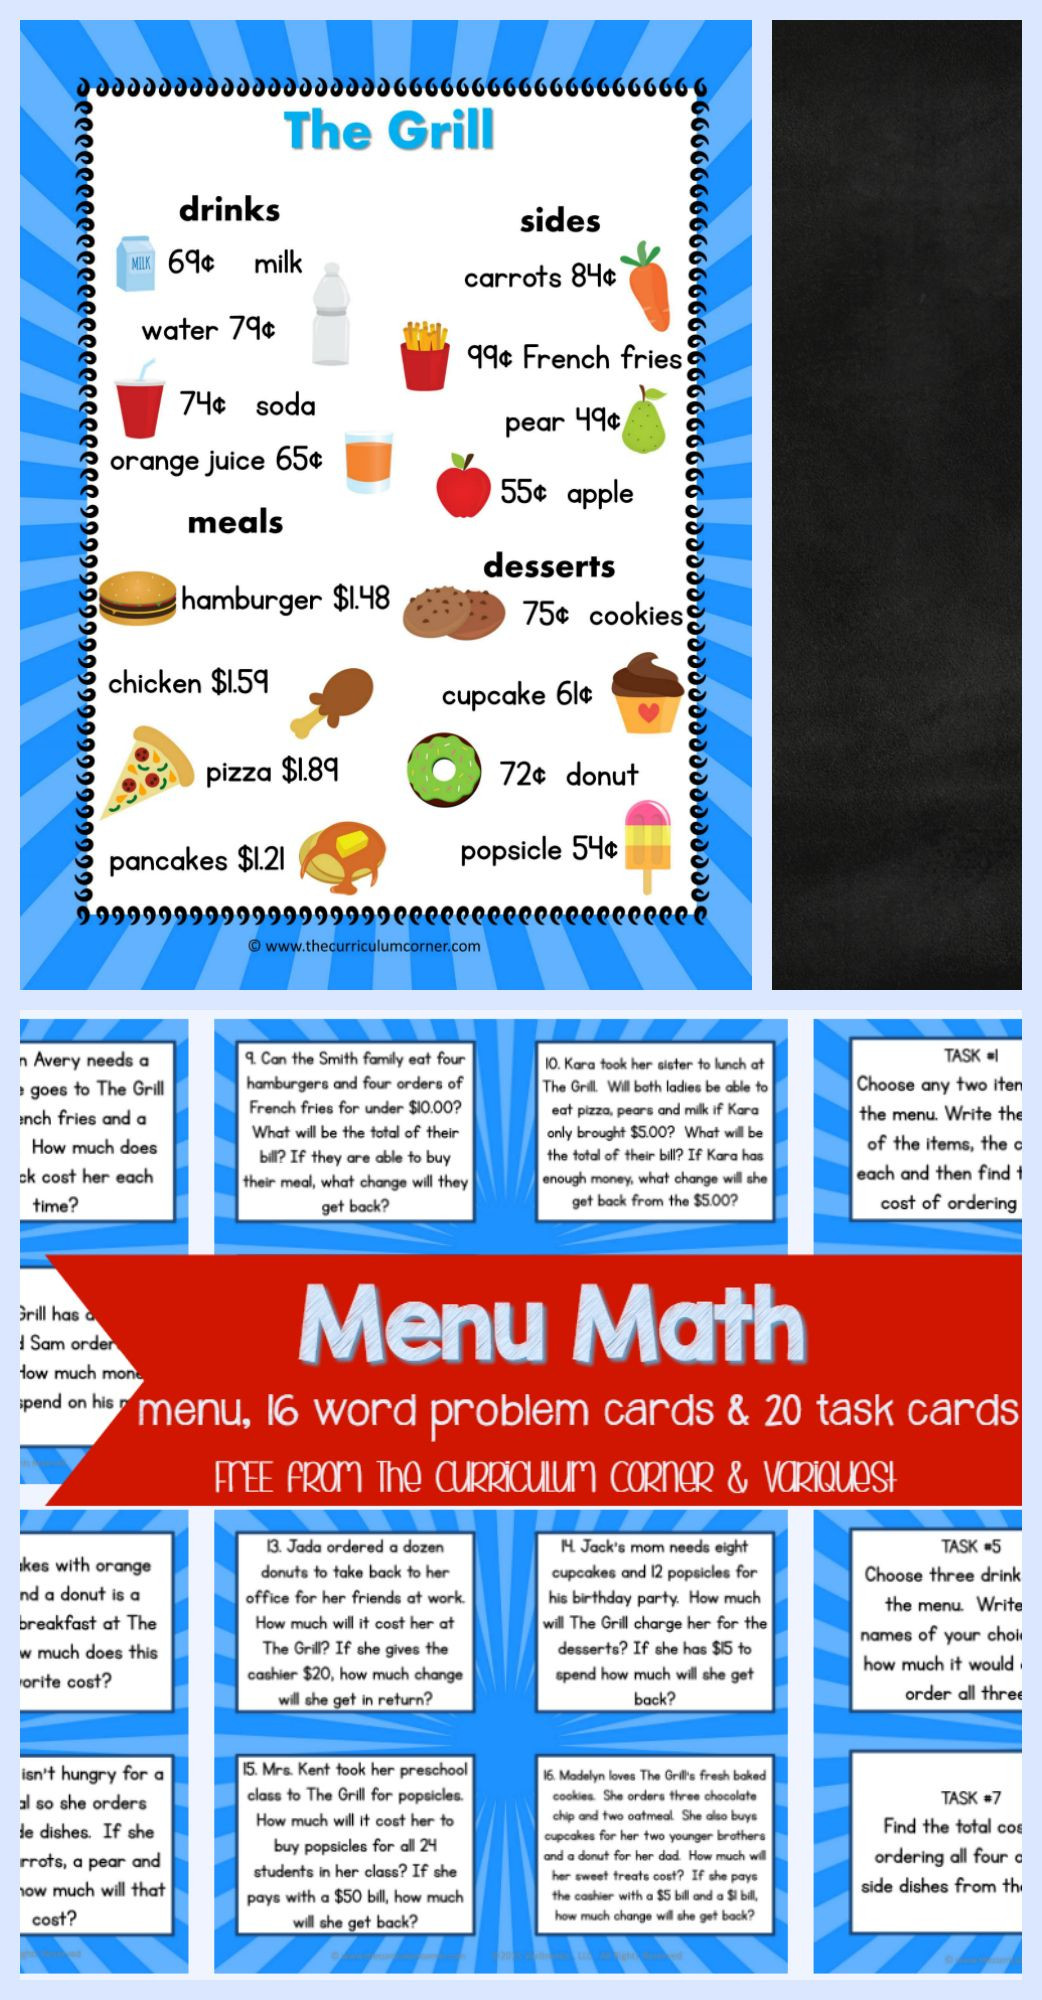 Menu Math Worksheets Free Menu Math for 4th & 5th Graders